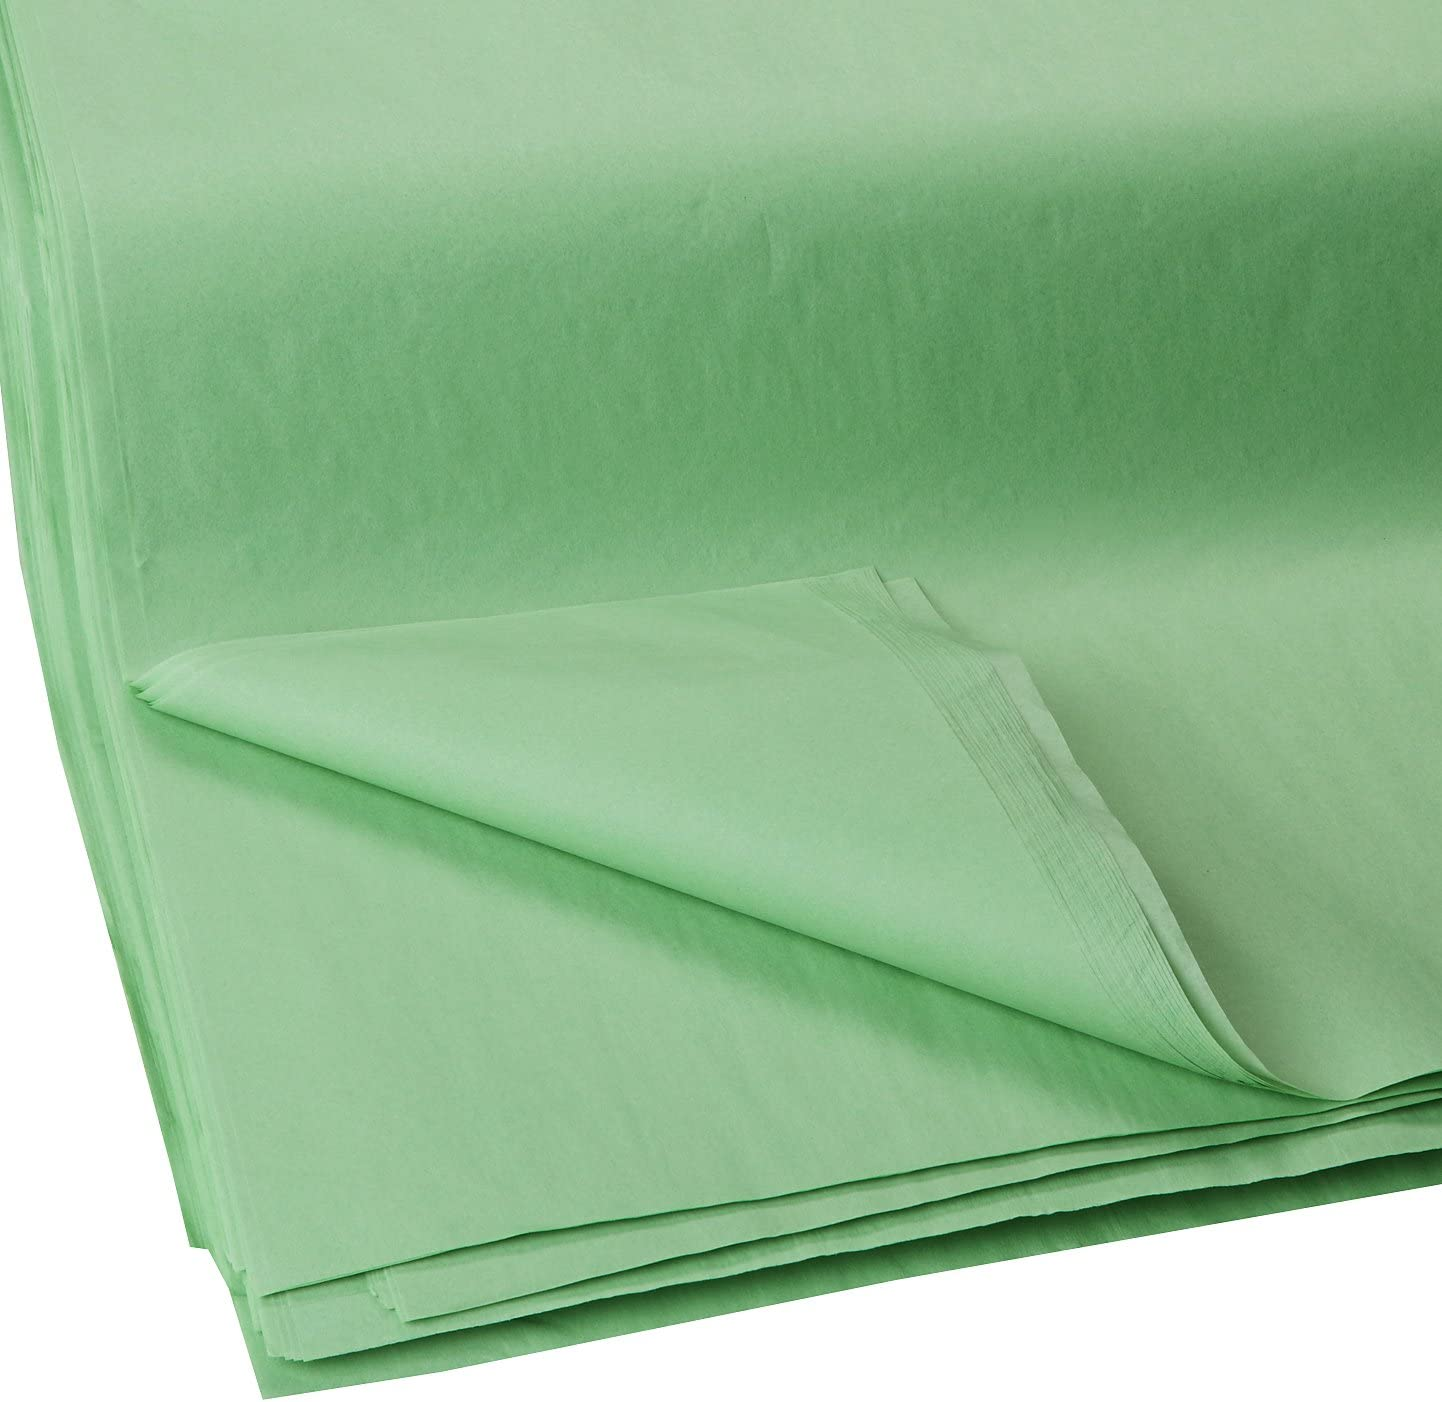 Jillson Roberts Bulk 20 x 30 Inches Recycled Tissue Available in 28 Colors, Apple, 480 Unfolded Sheets (BFT35)